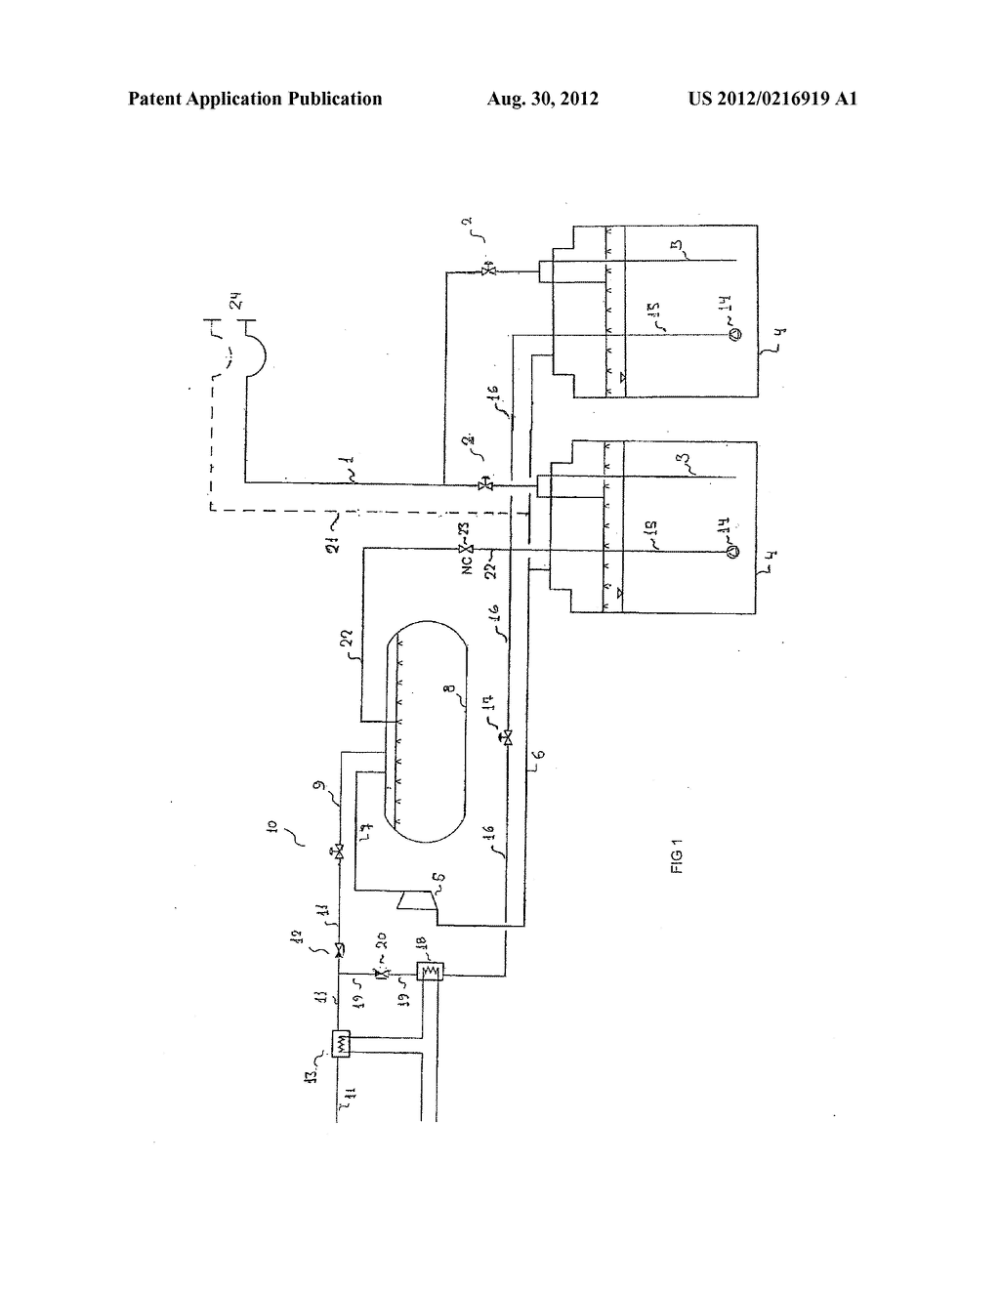 medium resolution of lng fuel tank system for at least one gas engine used for ship propulsion diagram schematic and image 02